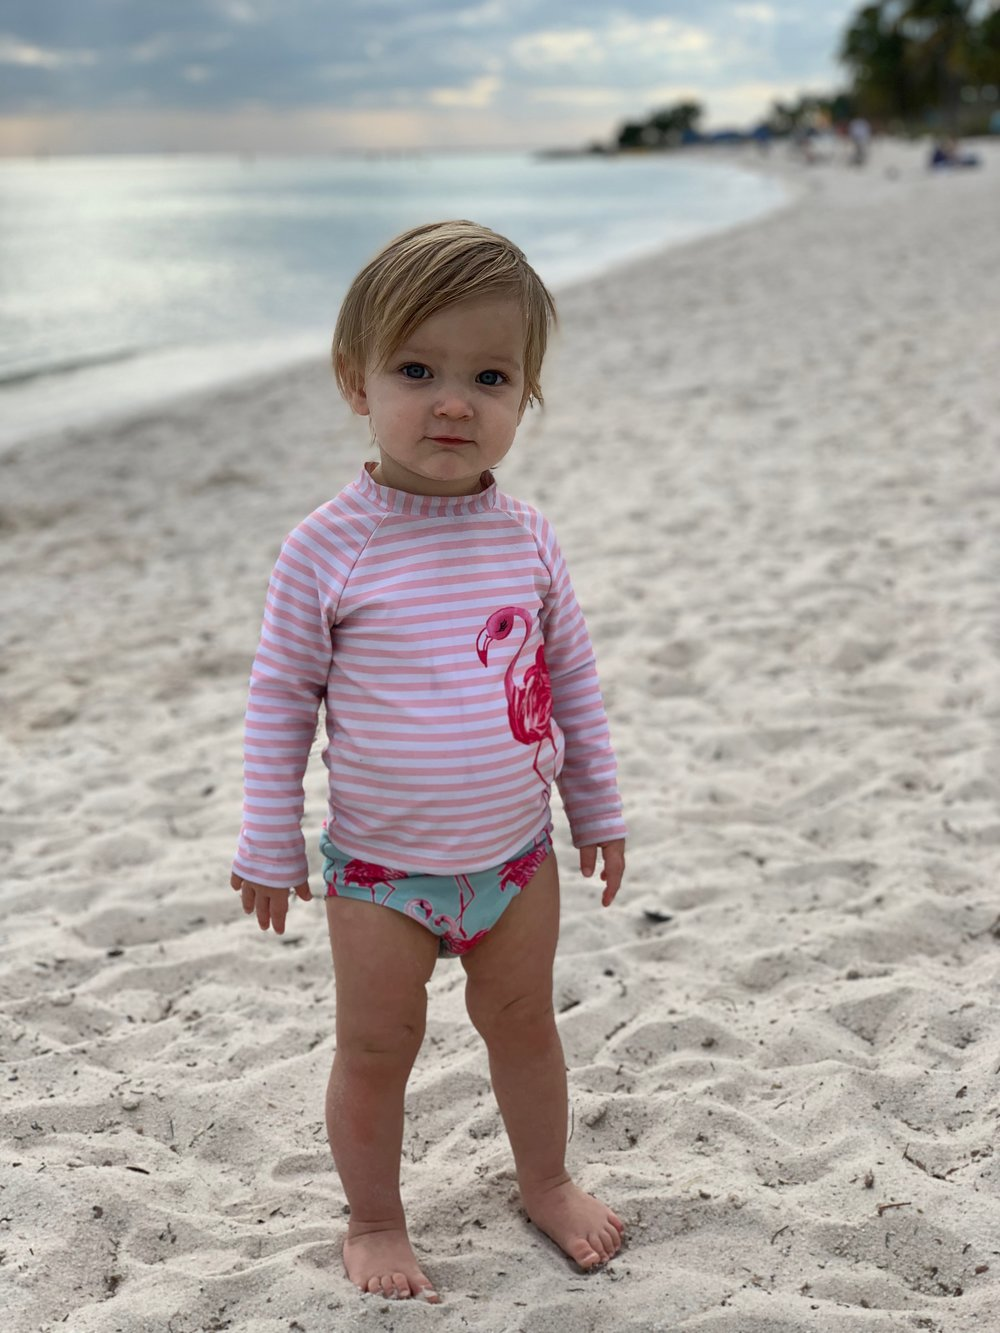 Smathers Beach | Key West Florida | Traveling with a toddler | kid friendly | By Sarah Rae